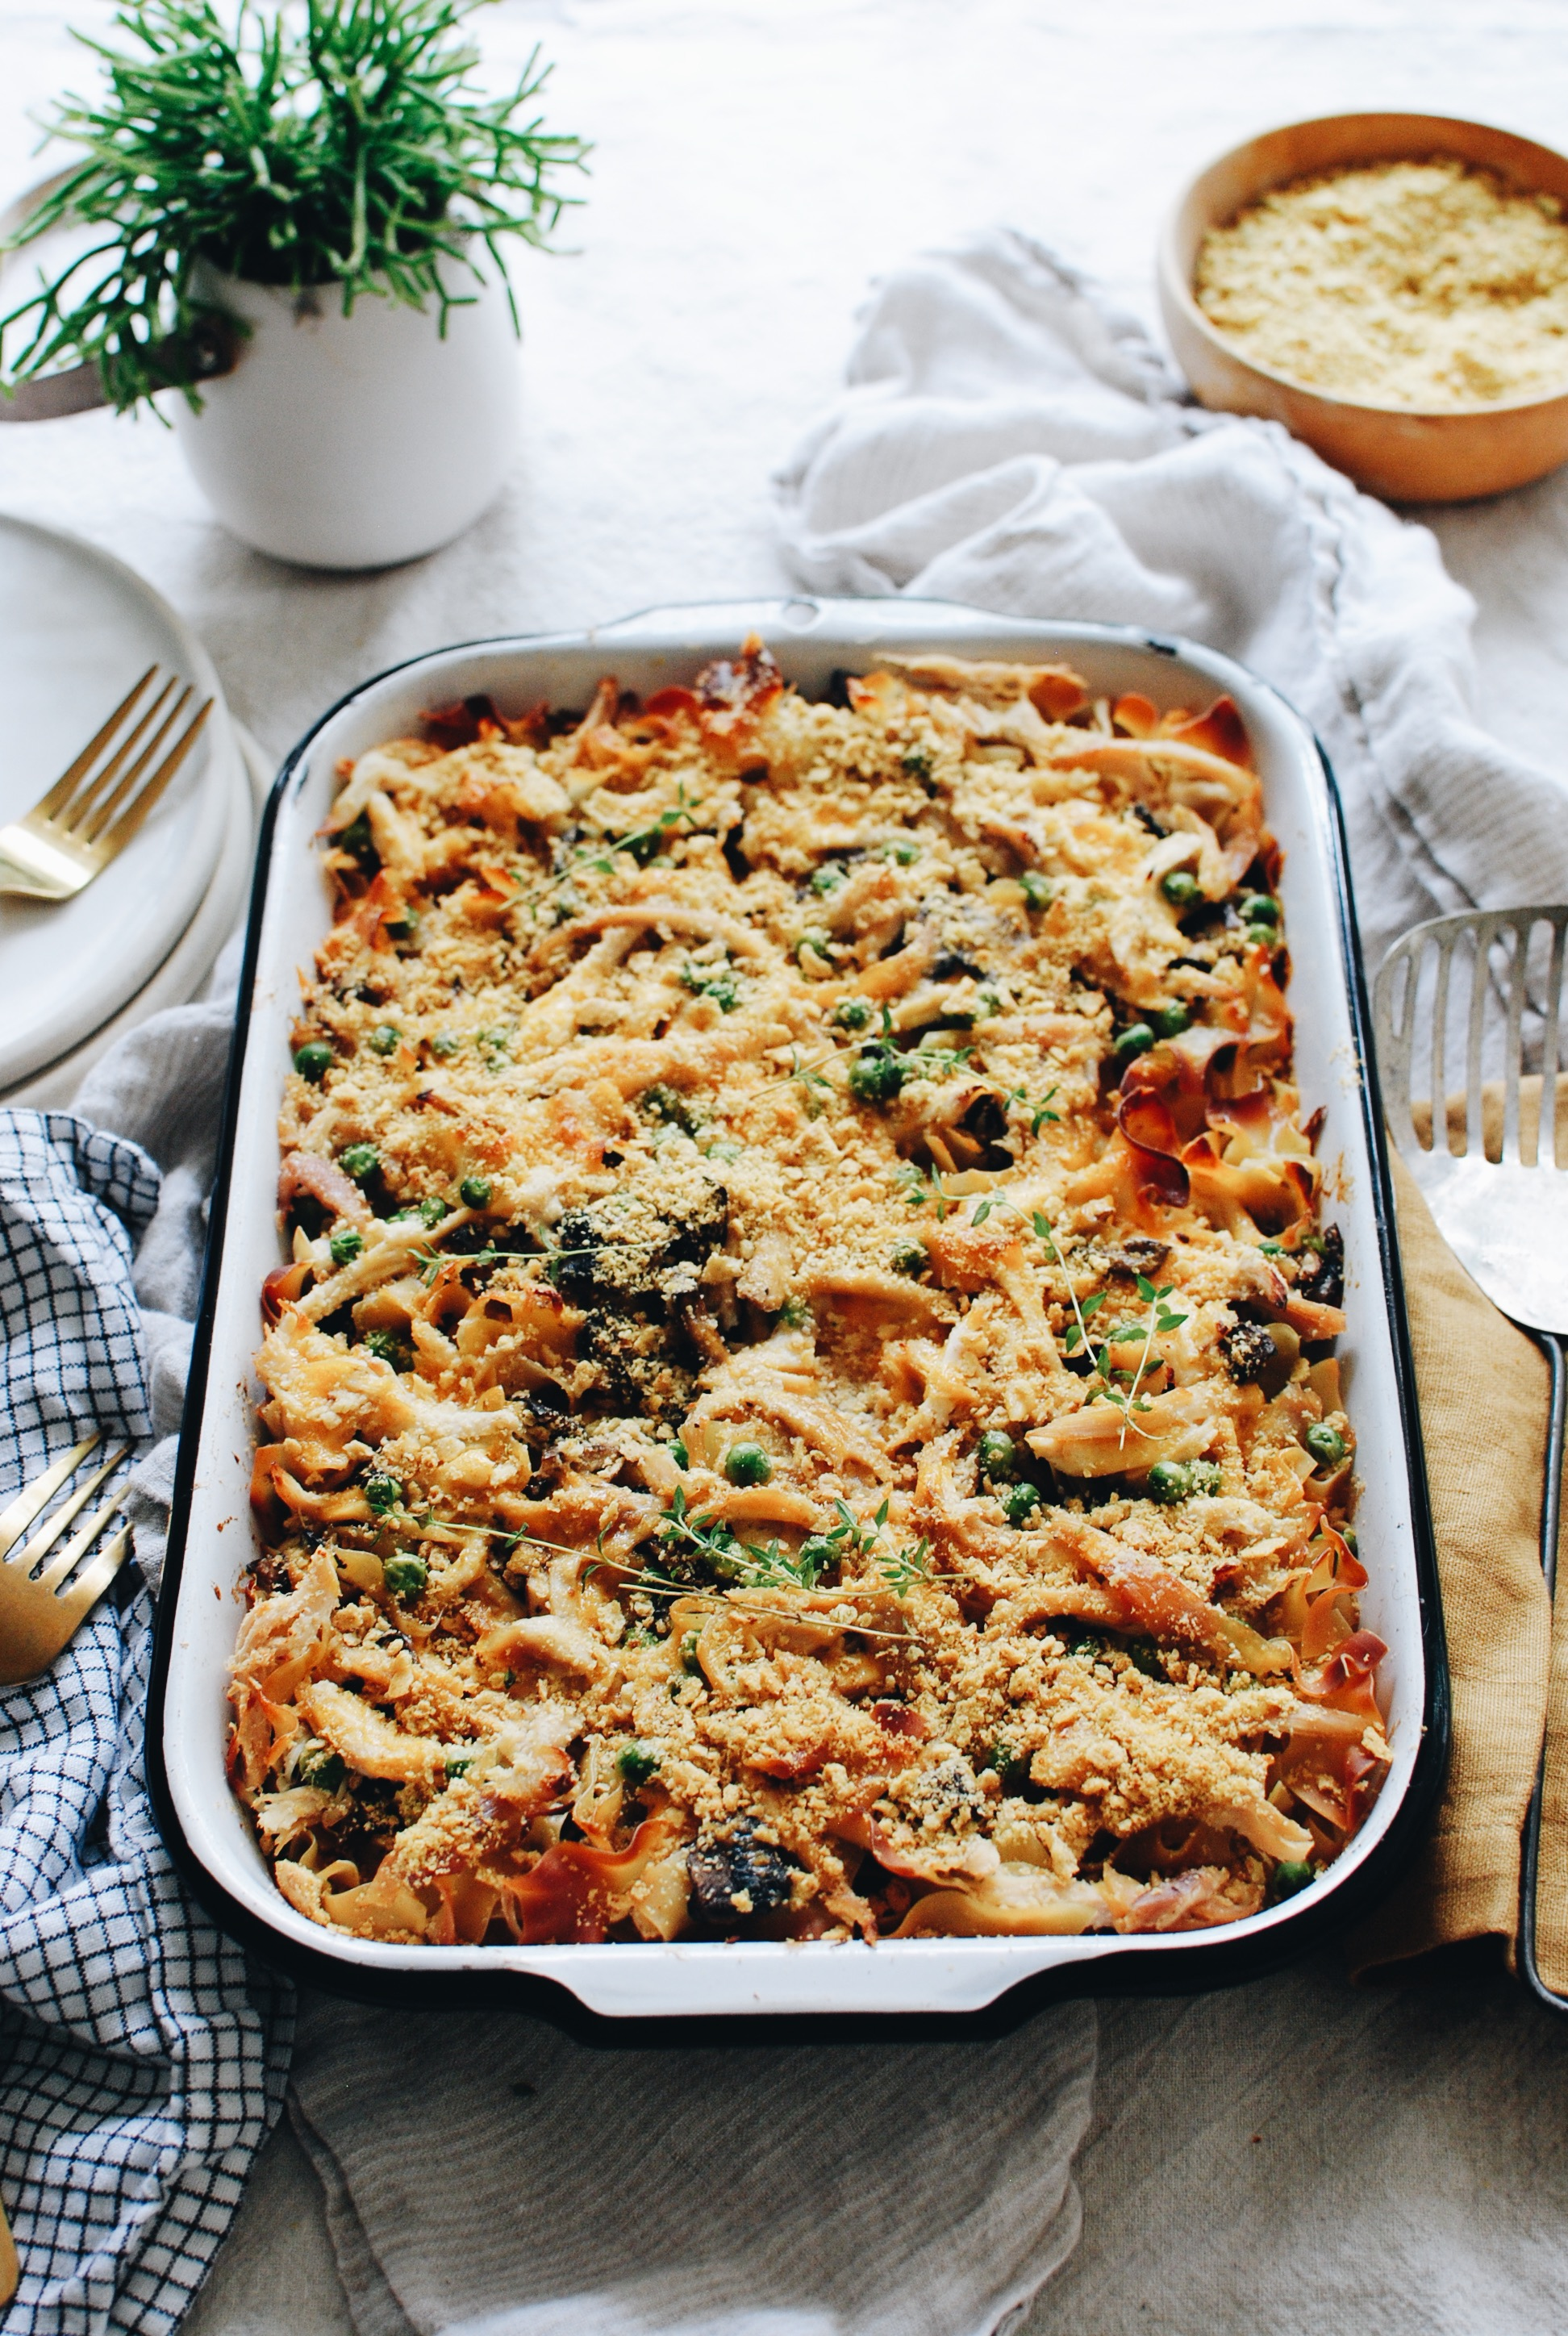 Chicken and Mushroom Noodle Casserole / Bev Cooks